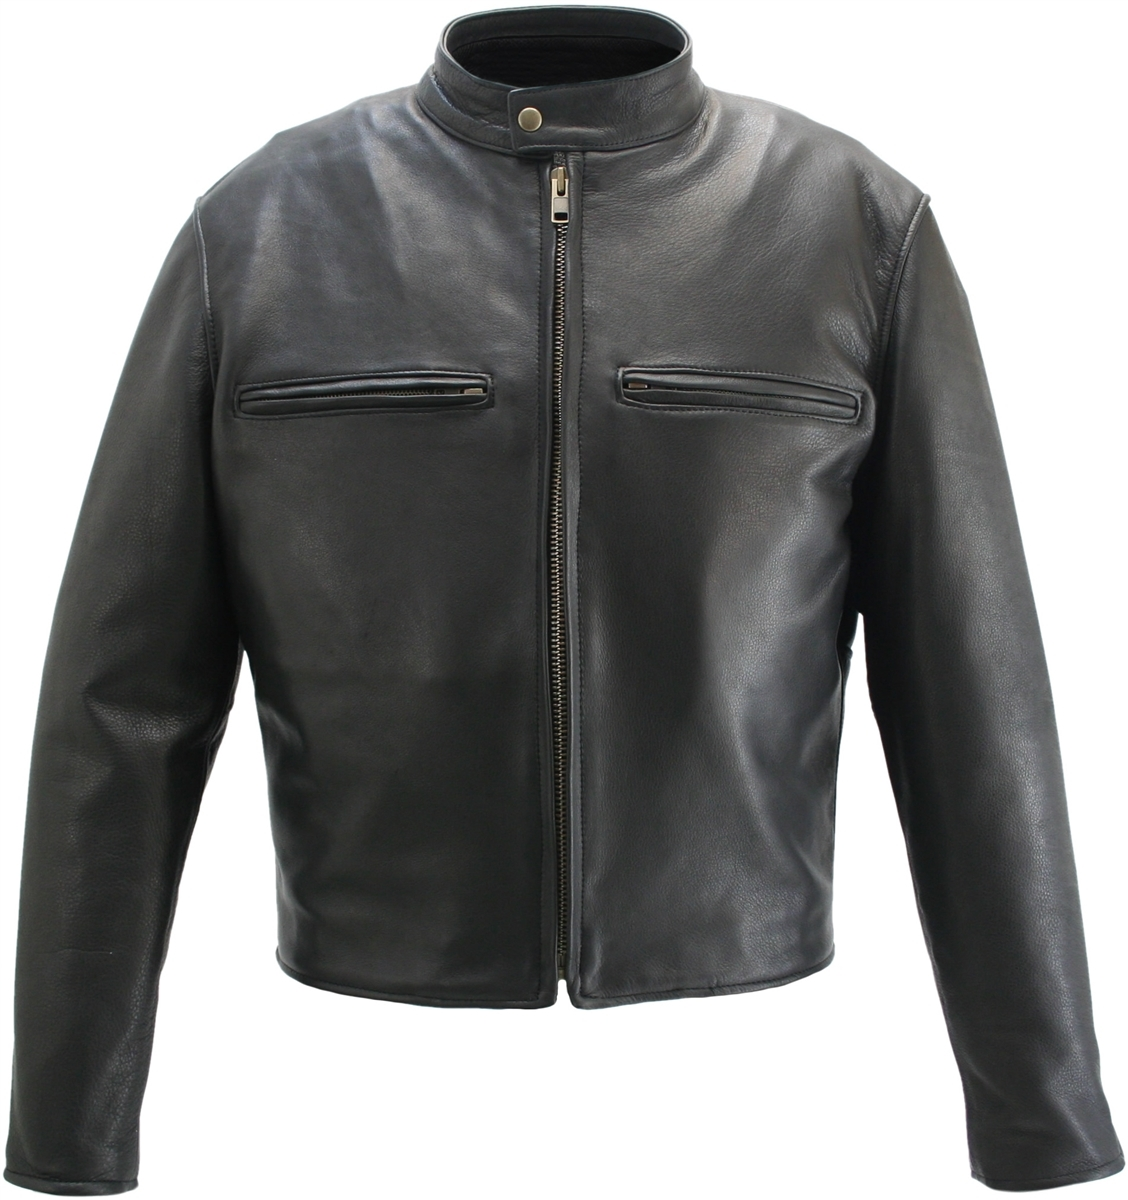 Cafe Racer tough on the road and off. Polytwill lining, zippered sleeves, dual chest Leather Lined pockets. Constructed with1.6-1.8 mm (4-41/2 oz) Soft, Supple, and Thick Cowhide Naked Leather and the craftsmanship that only Hillside USA can offer. Remova